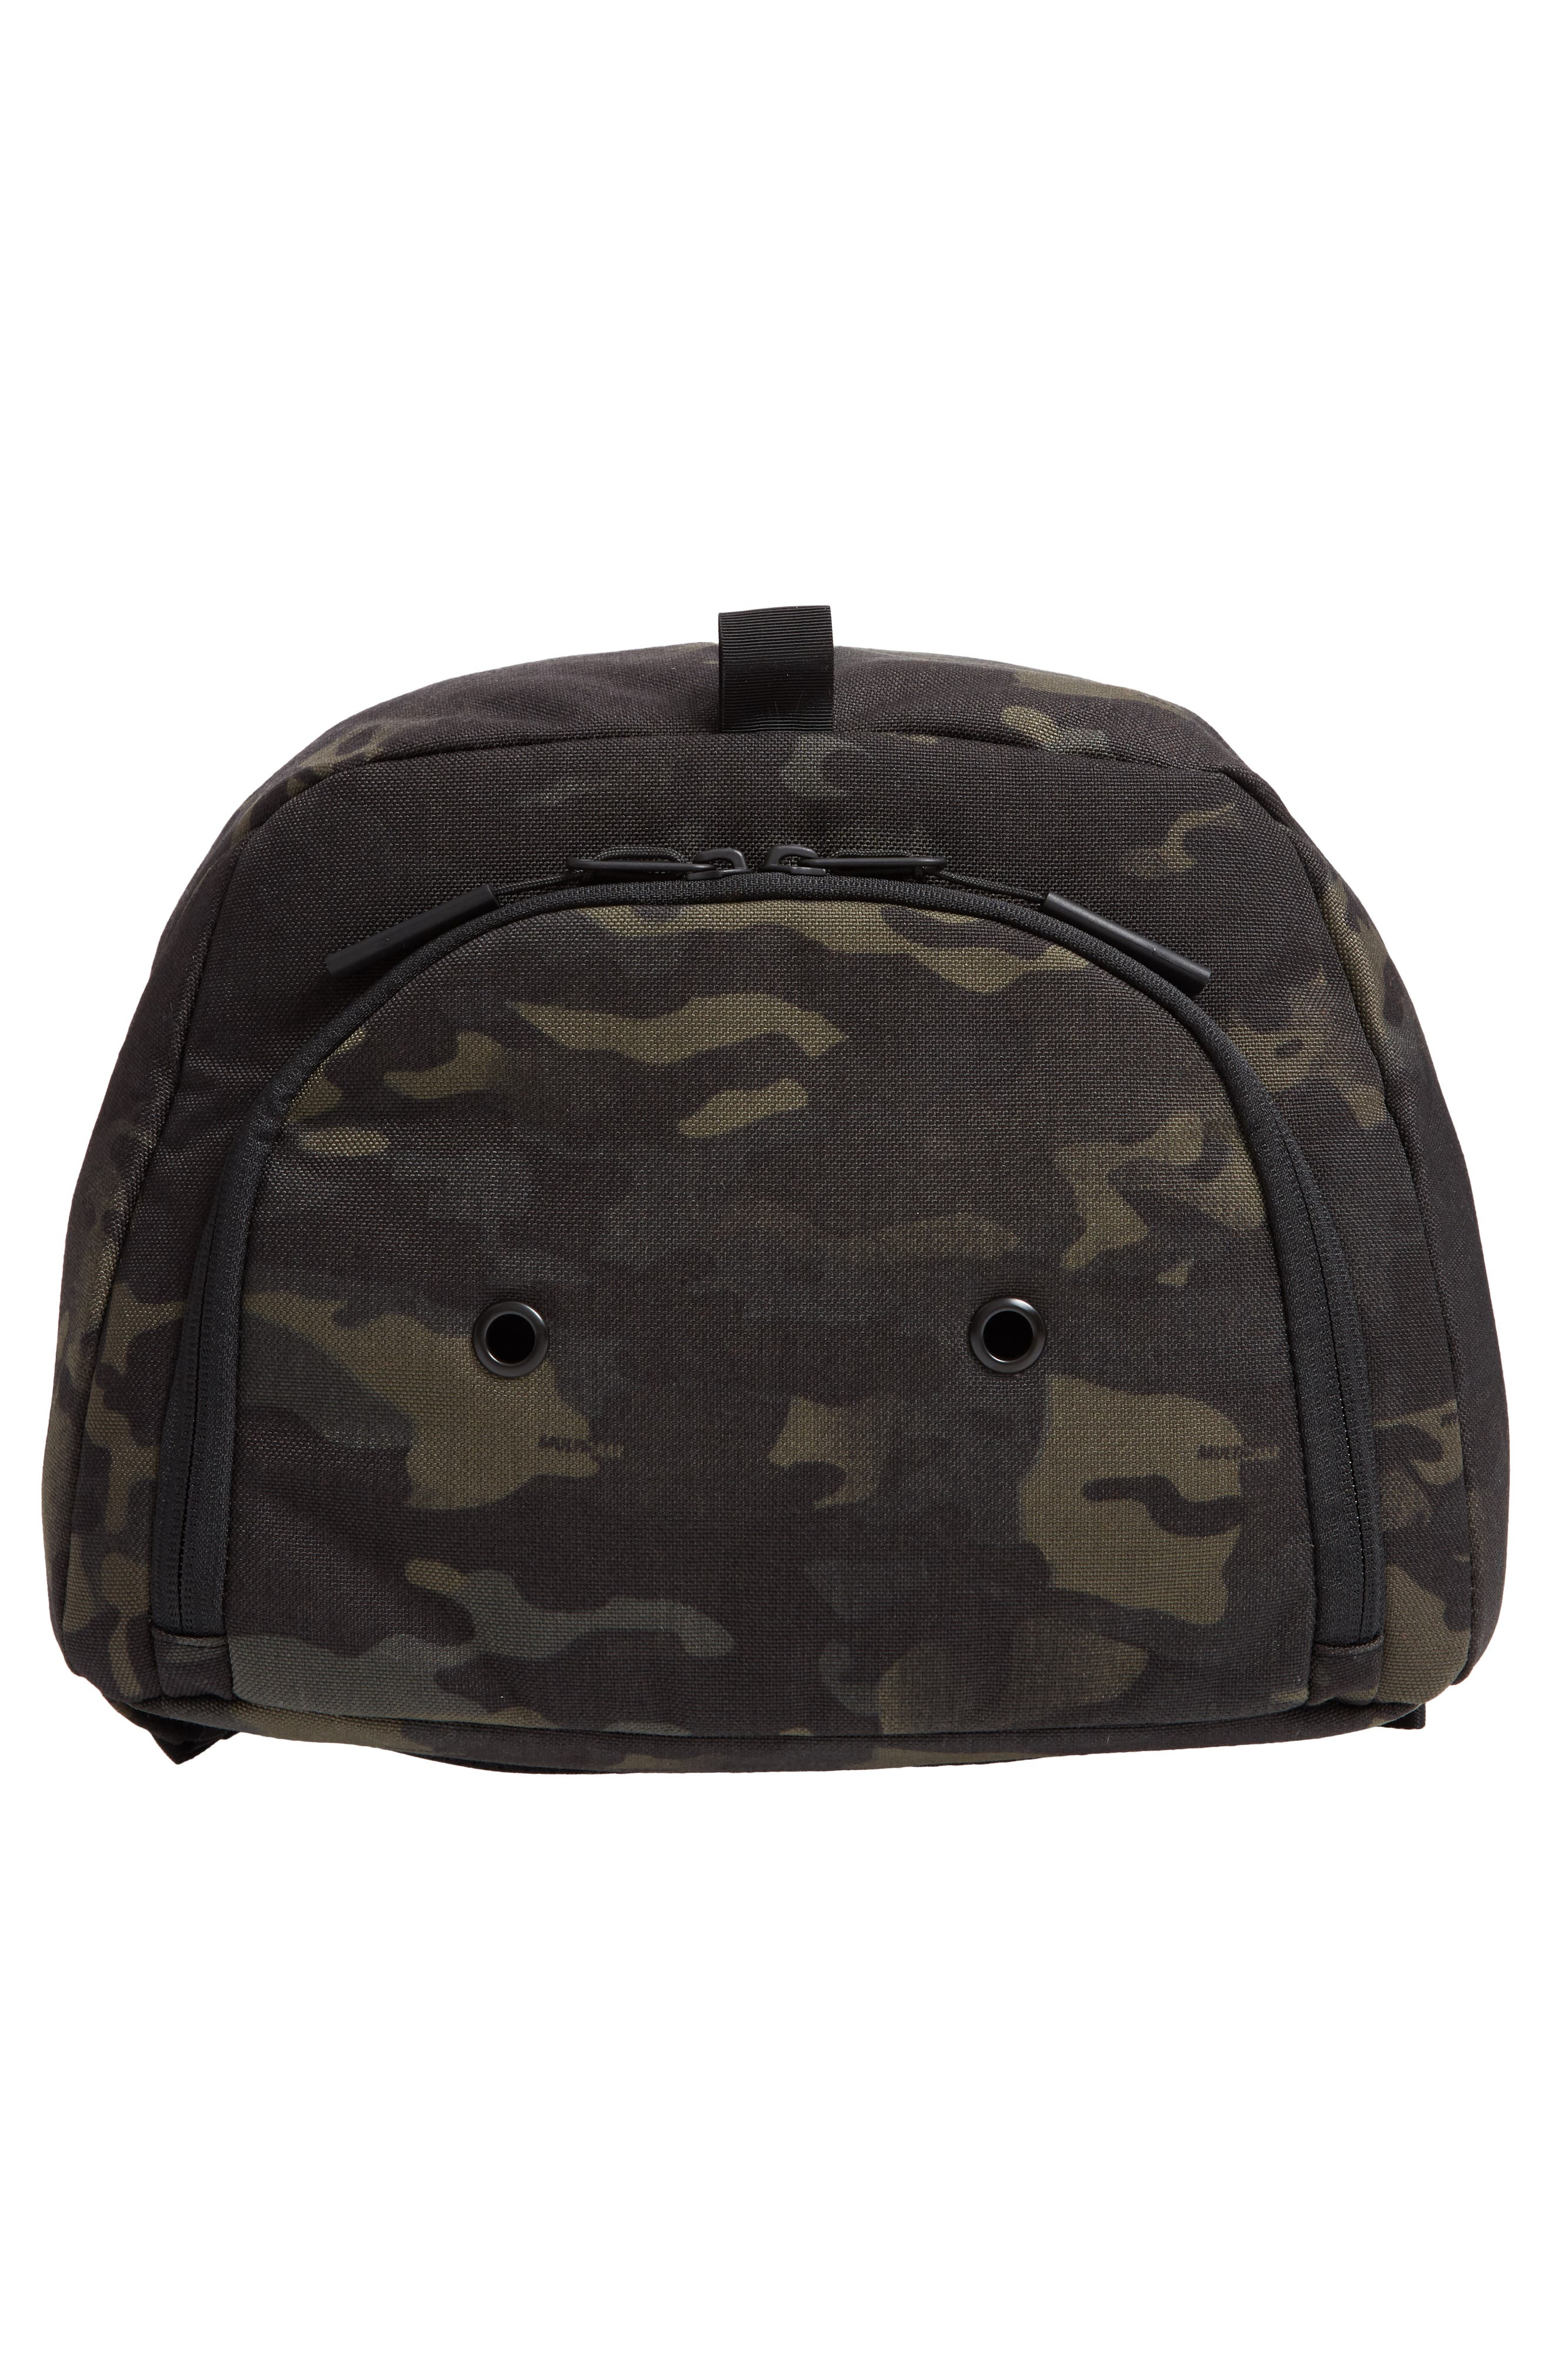 Fit Pack 2 Backpack,                             Alternate thumbnail 6, color,                             BLACK CAMO